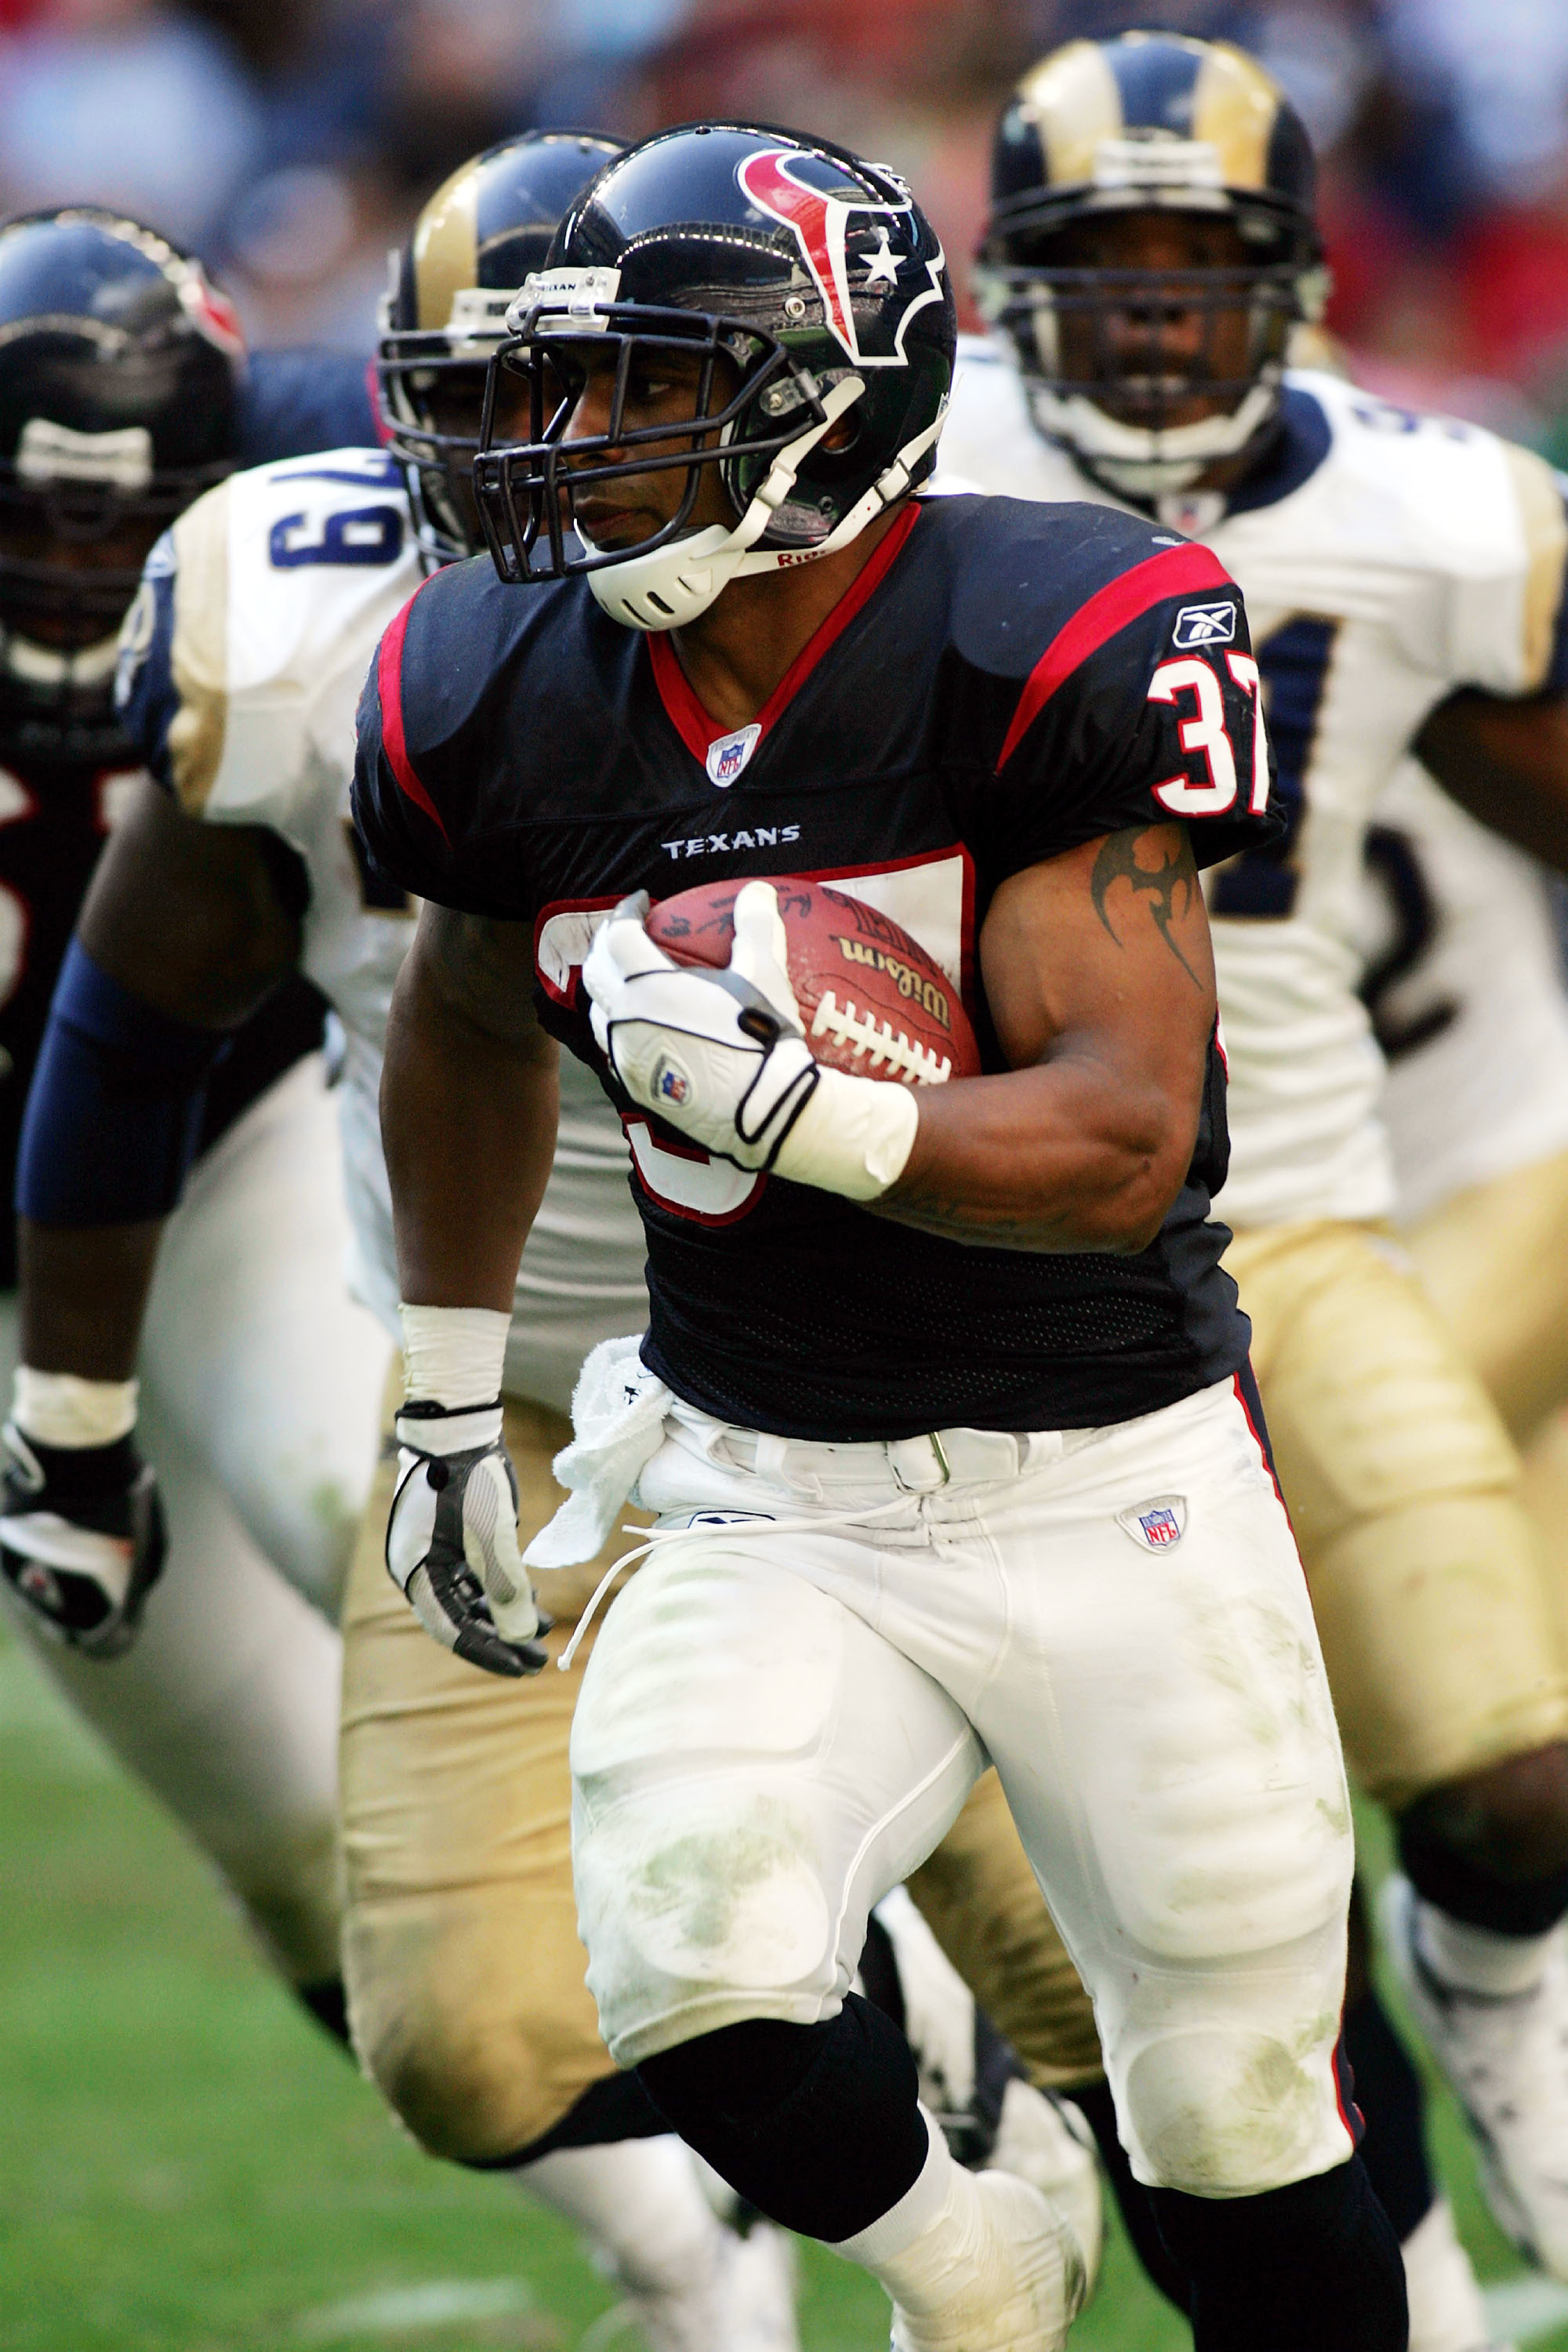 HOUSTON - NOVEMBER 27:  Running back Domanick Davis #37 of the Houston Texans runs the ball against the St. Louis Rams on November 27, 2005 at Reliant Stadium in Houston, Texas. The Rams defeated the Texans 33-27 in overtime.  (Photo by Ronald Martinez/Ge